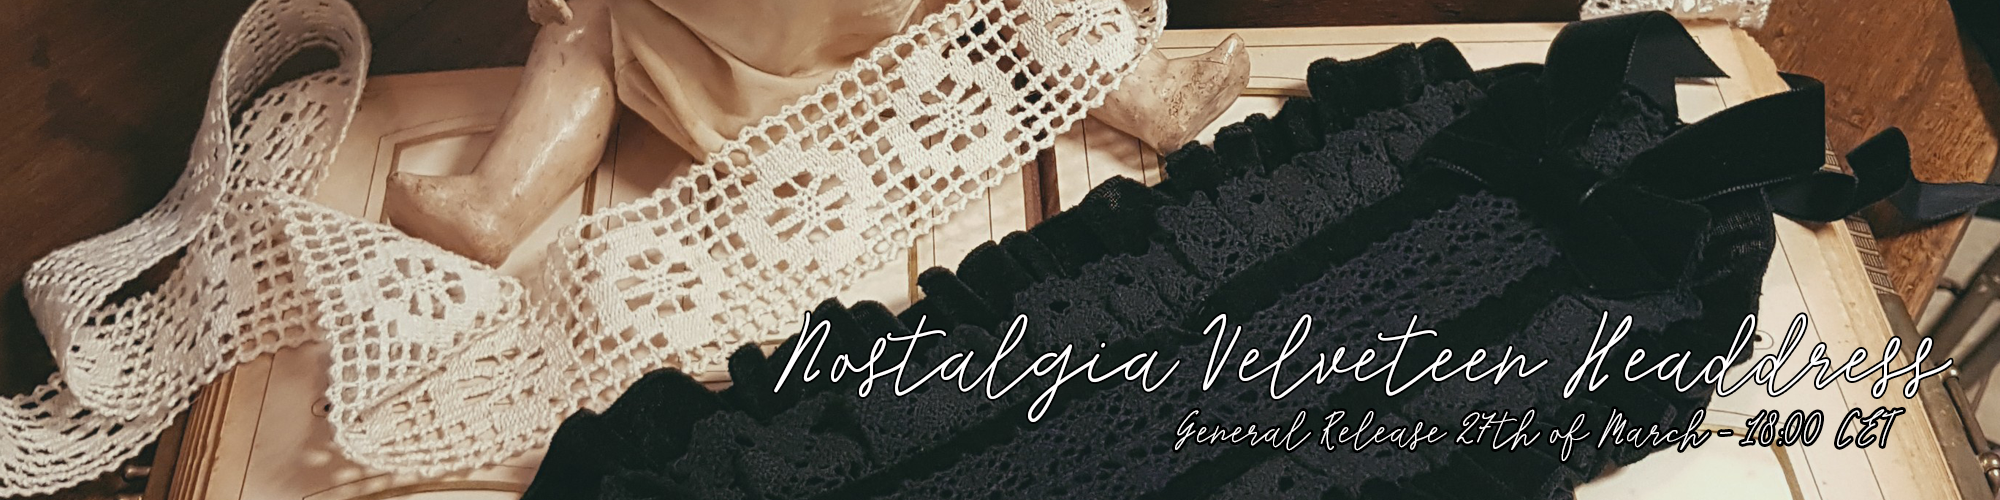 Nostalgia velveteen headdress general rerelease